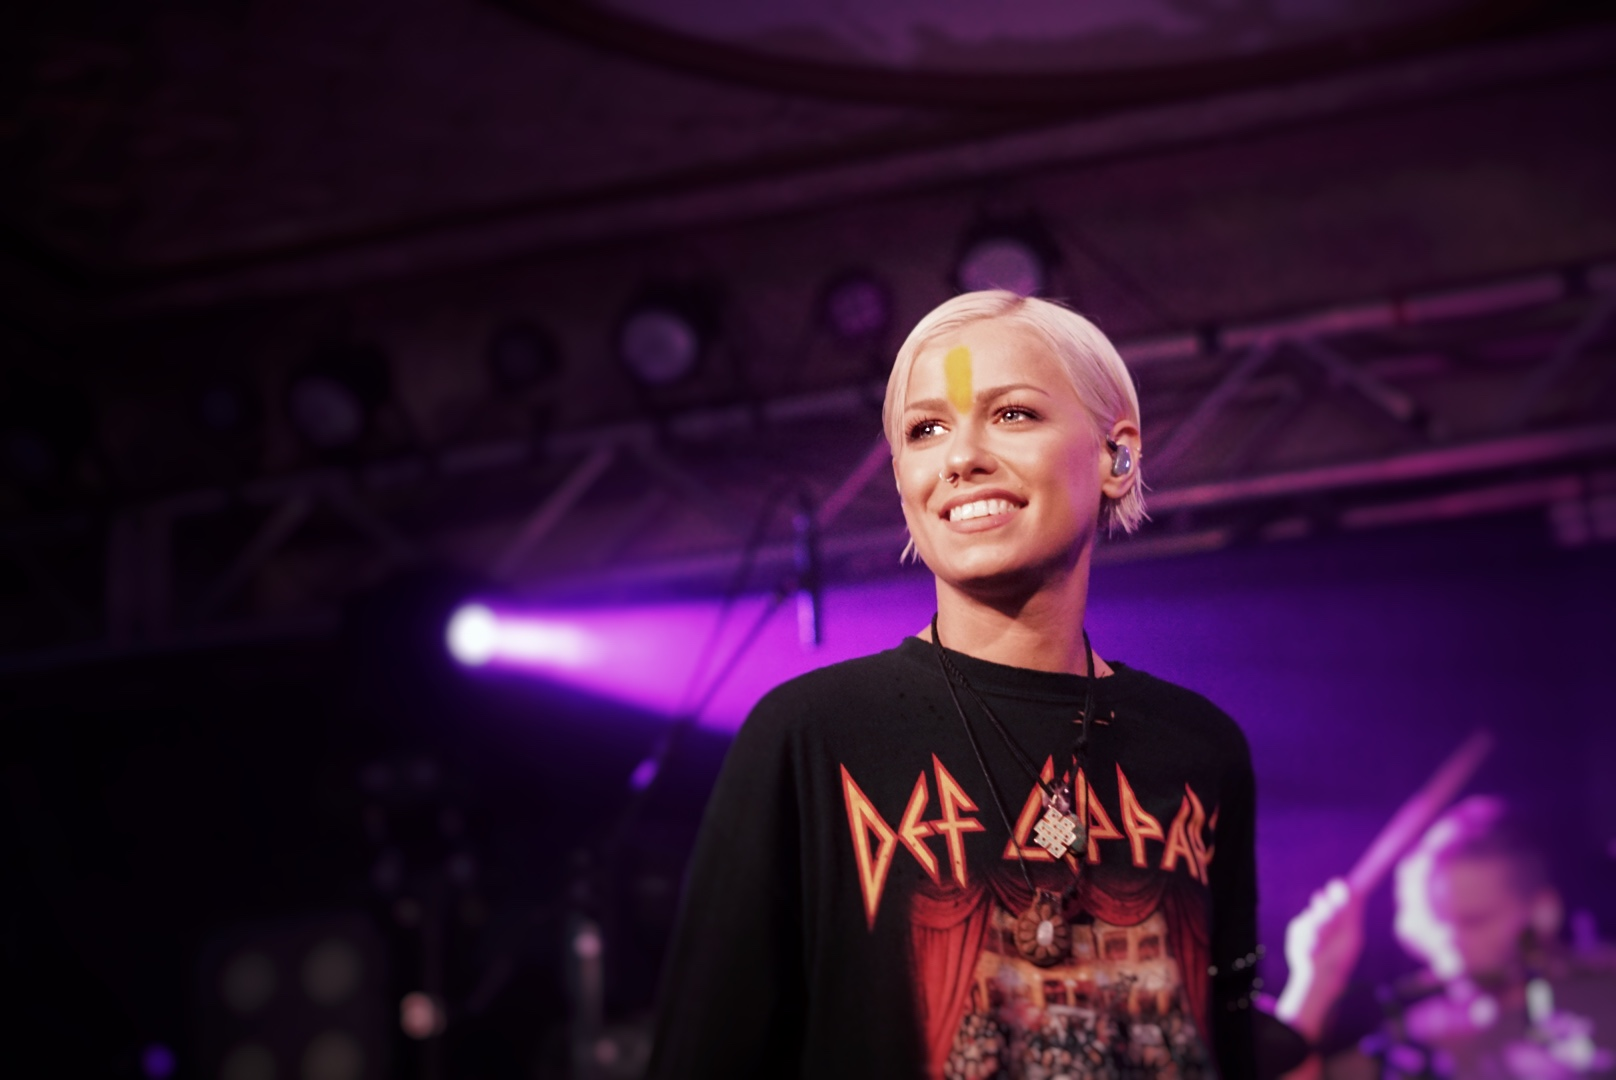 """Jenna McDougall on Tonight Alive's New LP: """"Something big is working through me"""""""